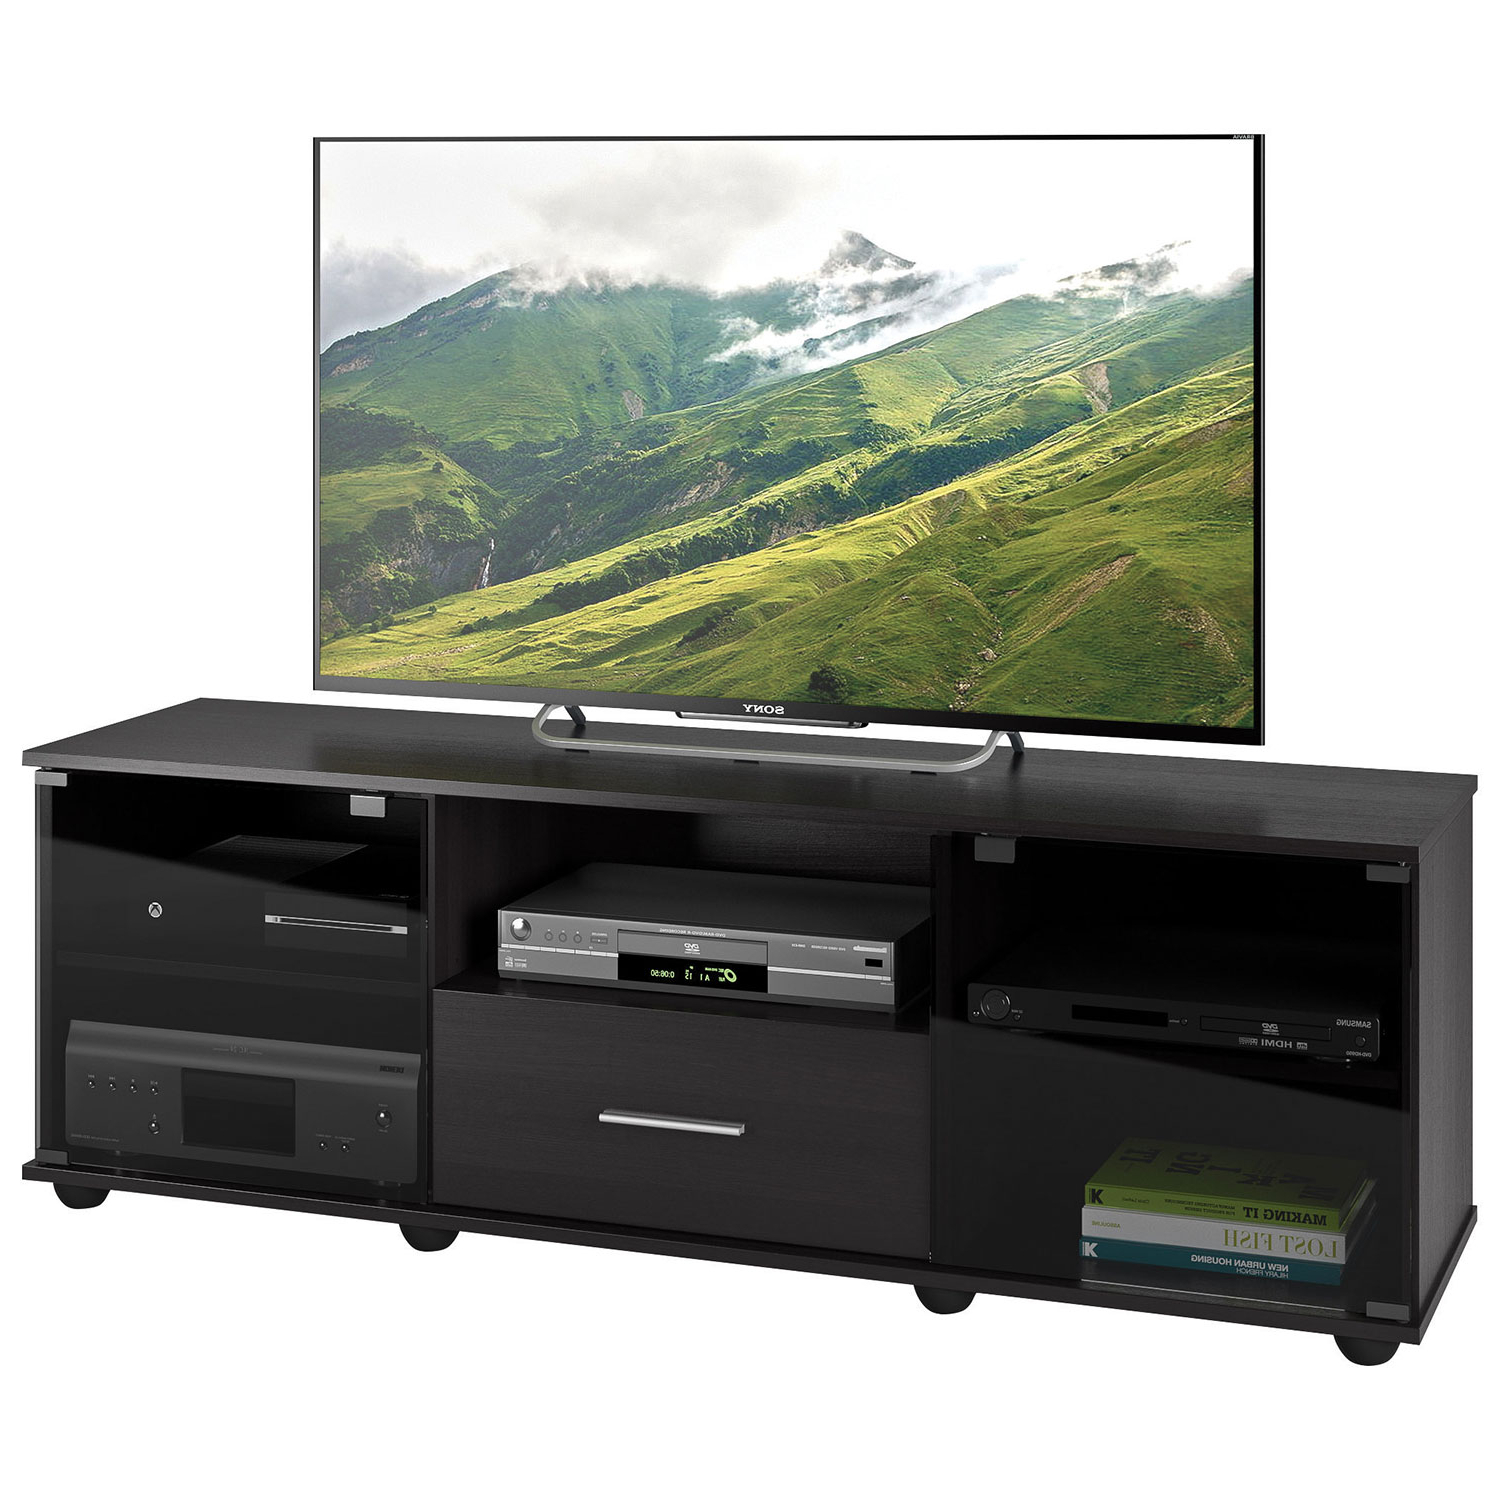 "Corliving Fernbrook 70"" Tv Stand – Black : Tv Stands – Best Buy Canada Pertaining To Valencia 60 Inch Tv Stands (View 6 of 20)"